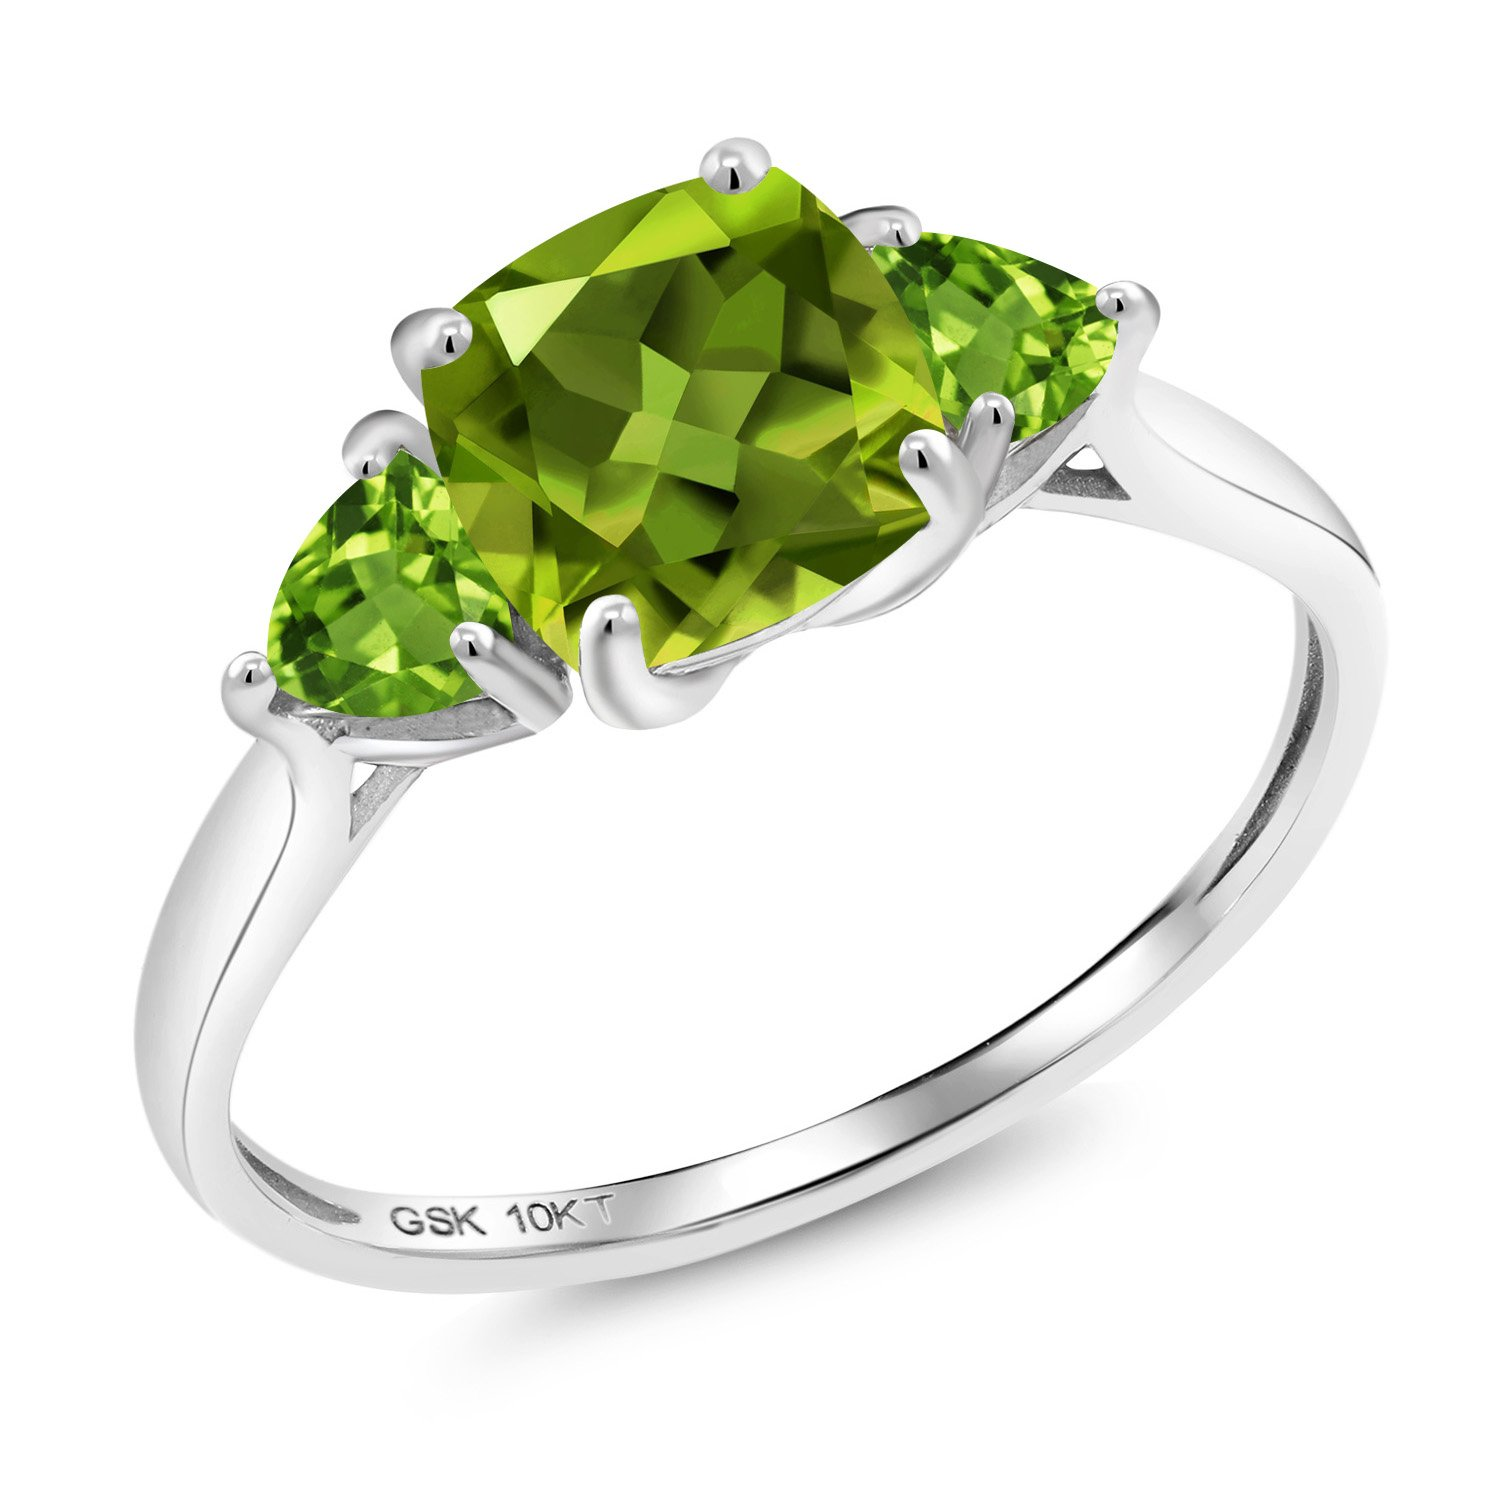 Gem Stone King 2.22 Ct Cushion Green Peridot 10K White Gold 3 Stone Meghan Ring (Size 9) by Gem Stone King